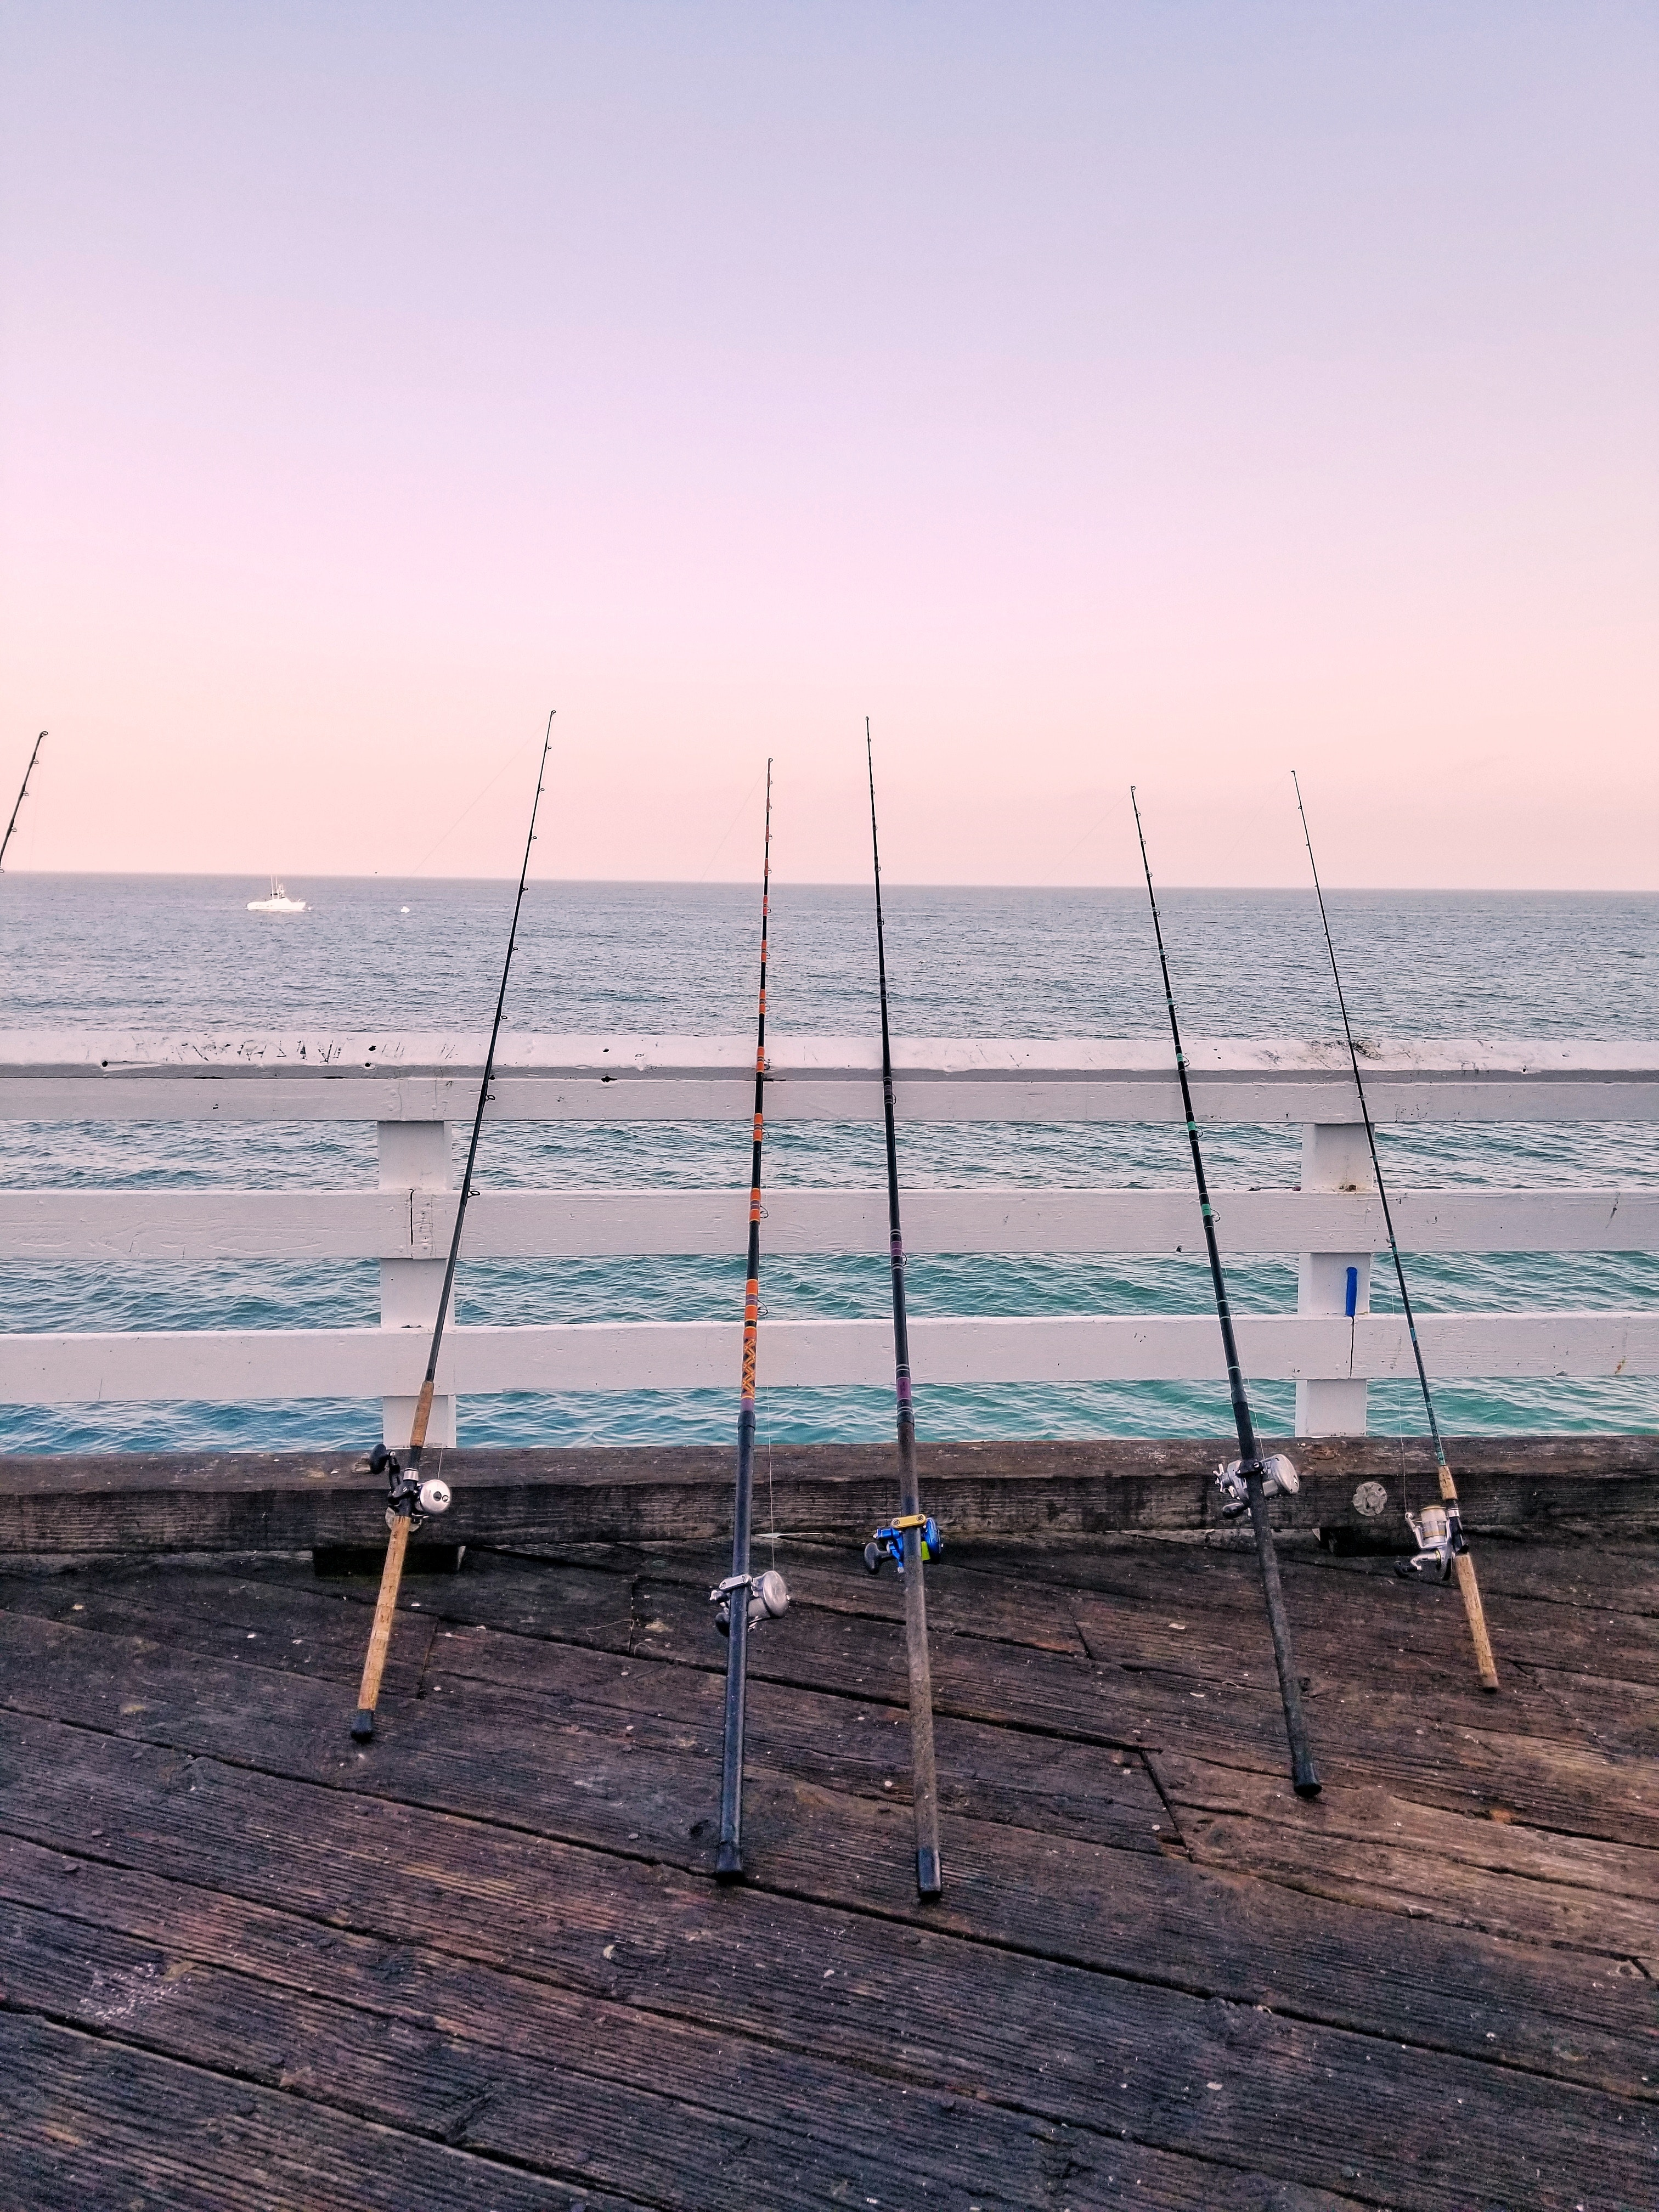 different fishing rods leaning on the railings of a jetty